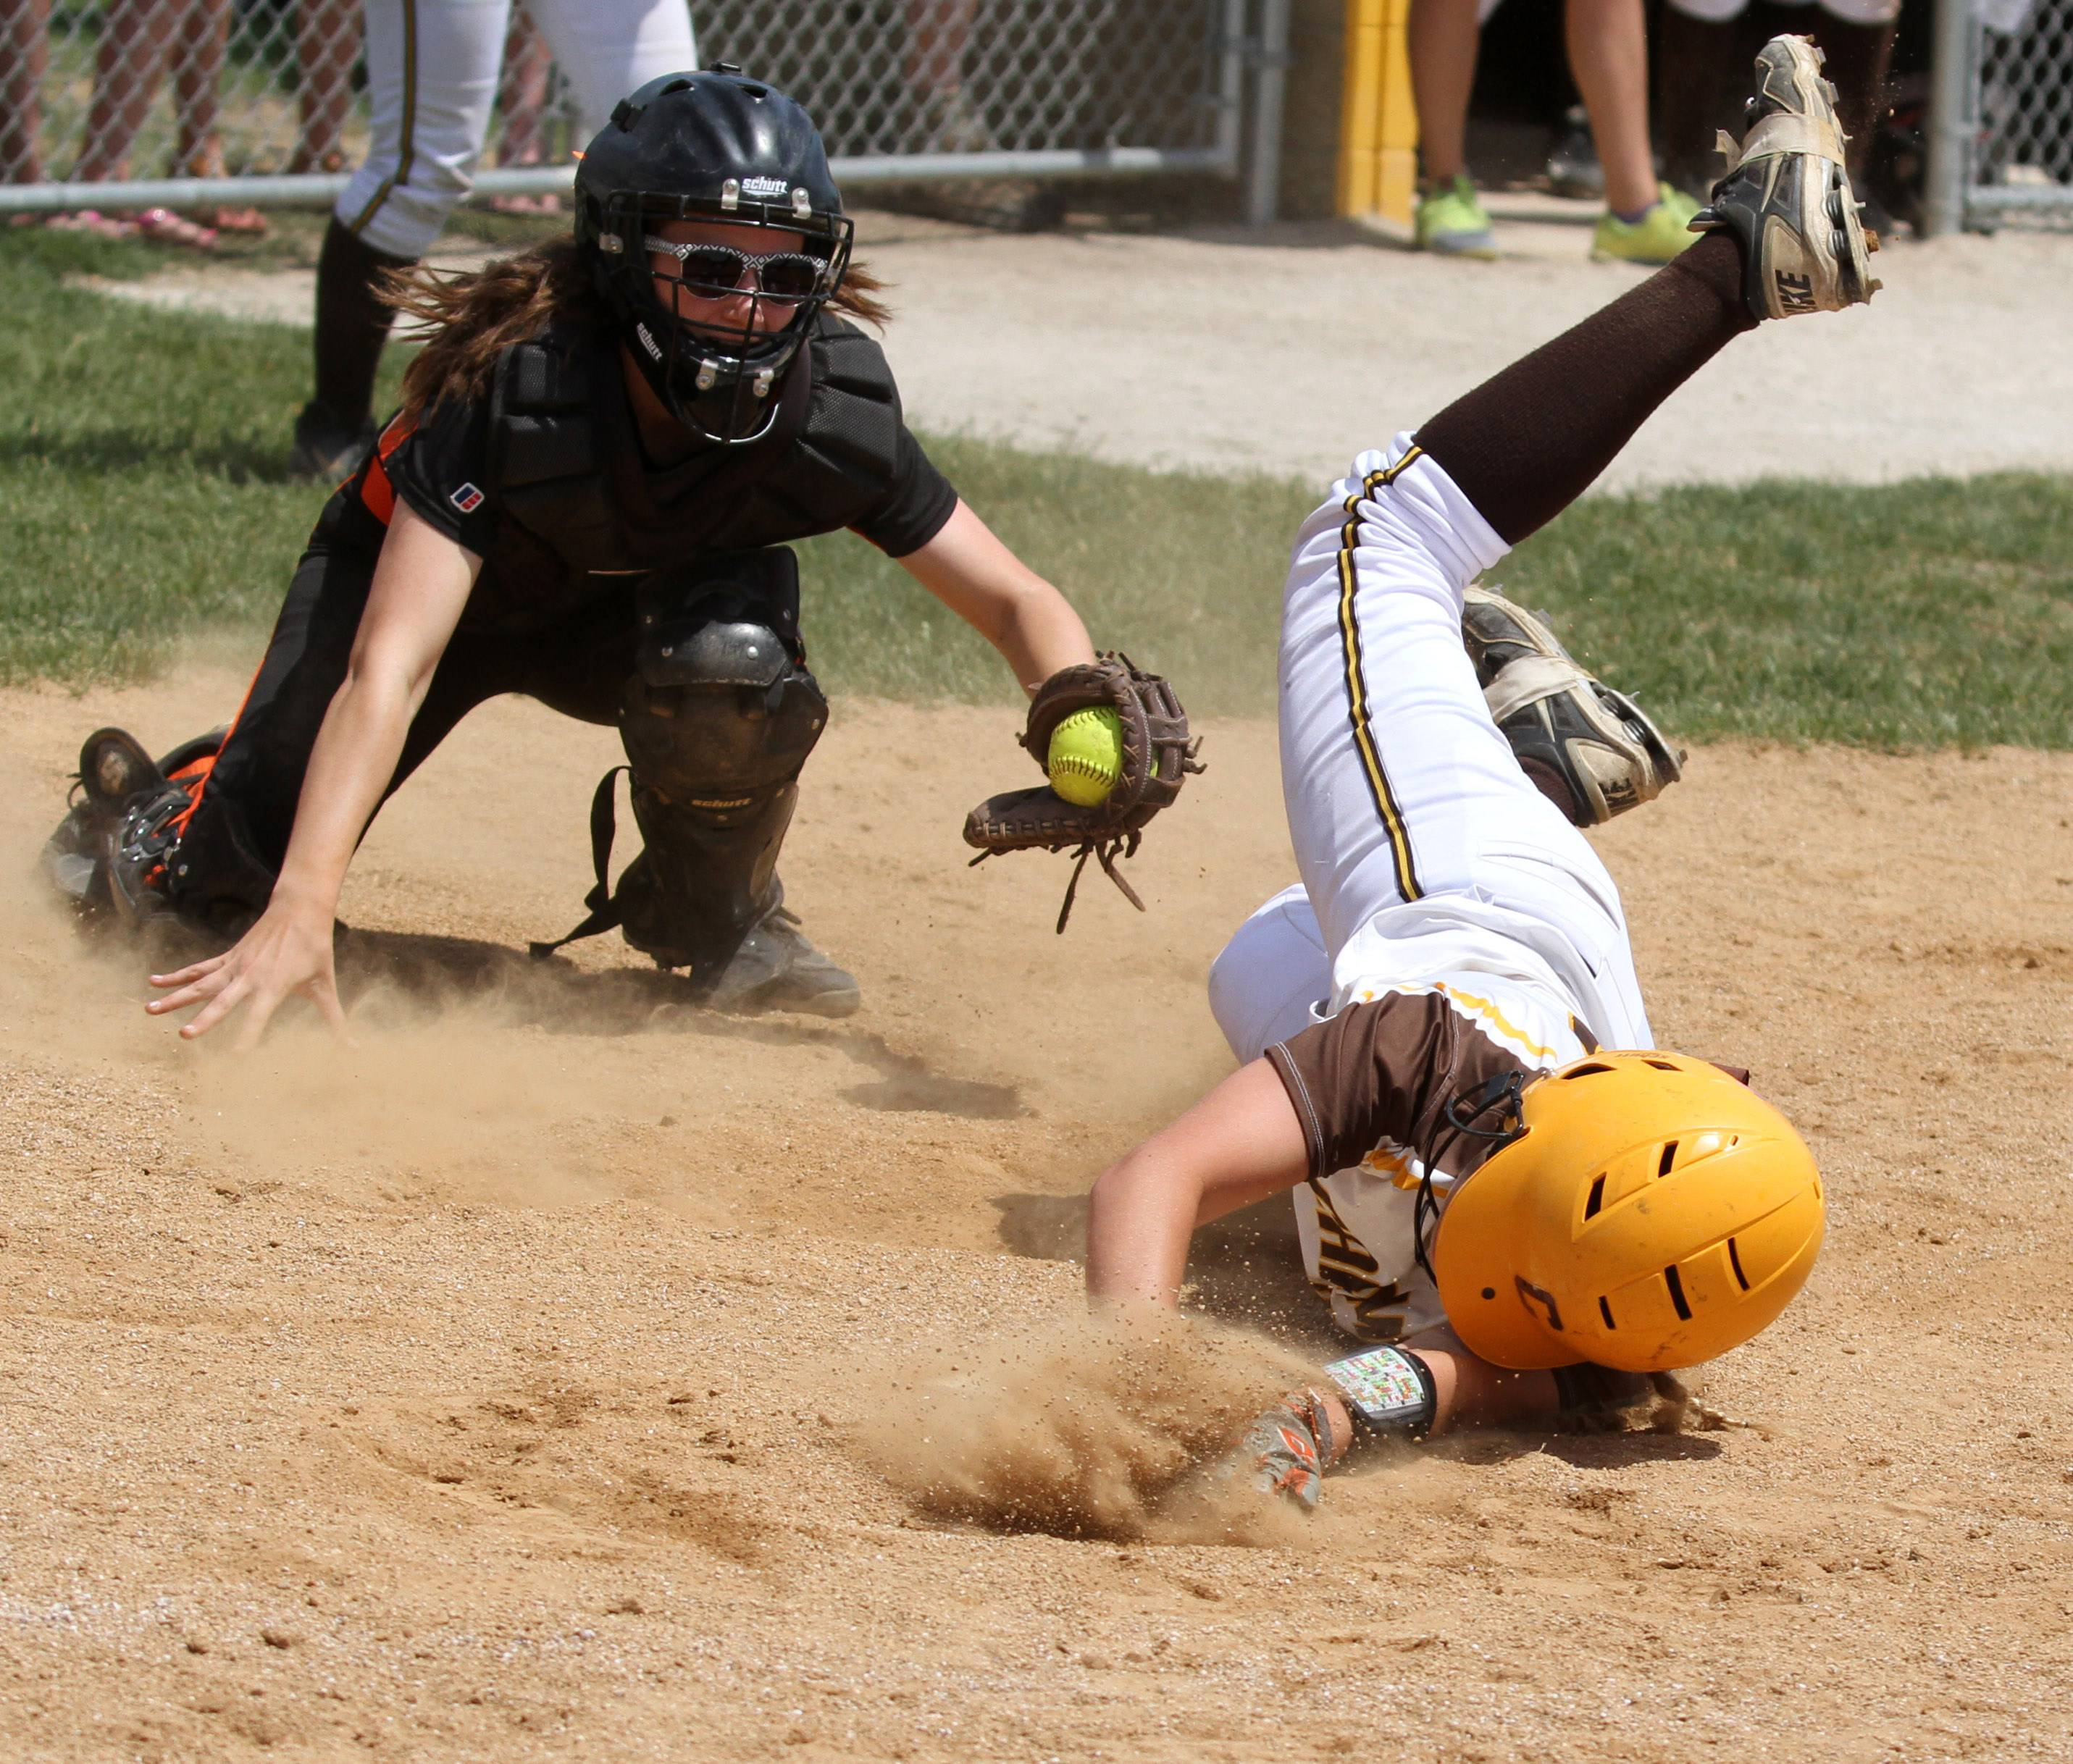 Libertyville catcher Andi Katz is able to tag Carmel's Amy Abel out at home plate.